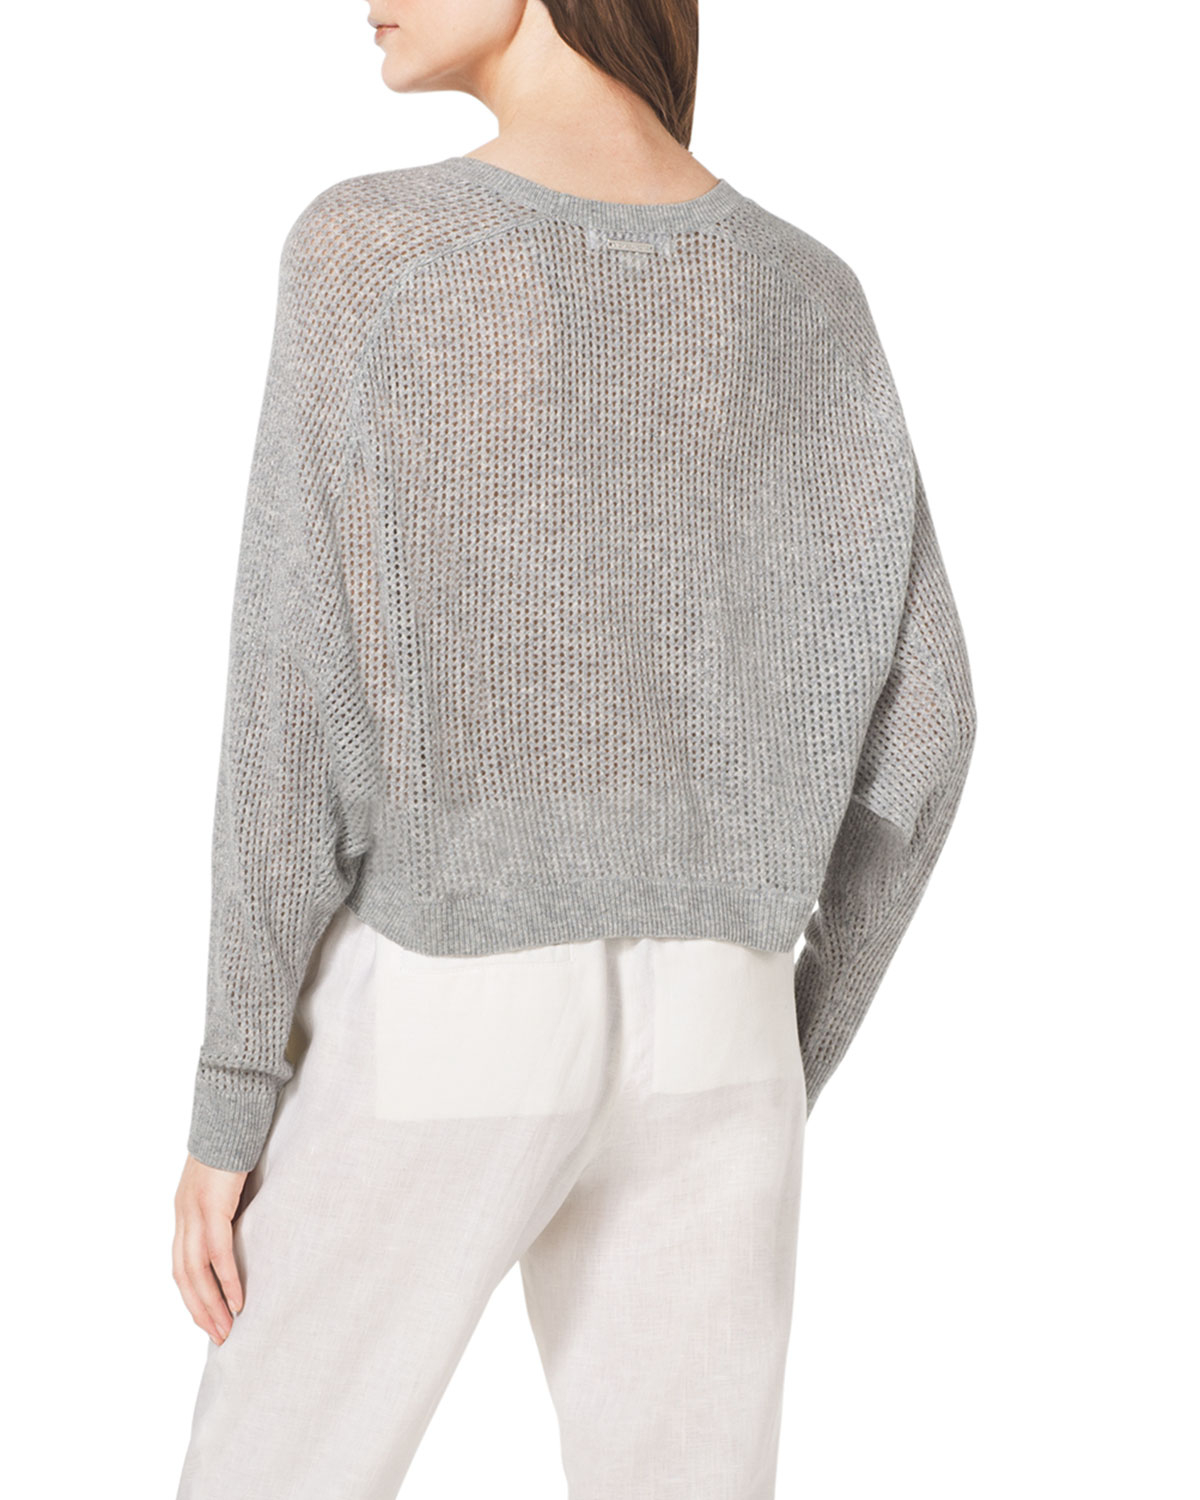 Michael michael kors Cropped Waffle-Knit Cashmere Sweater in Gray ...